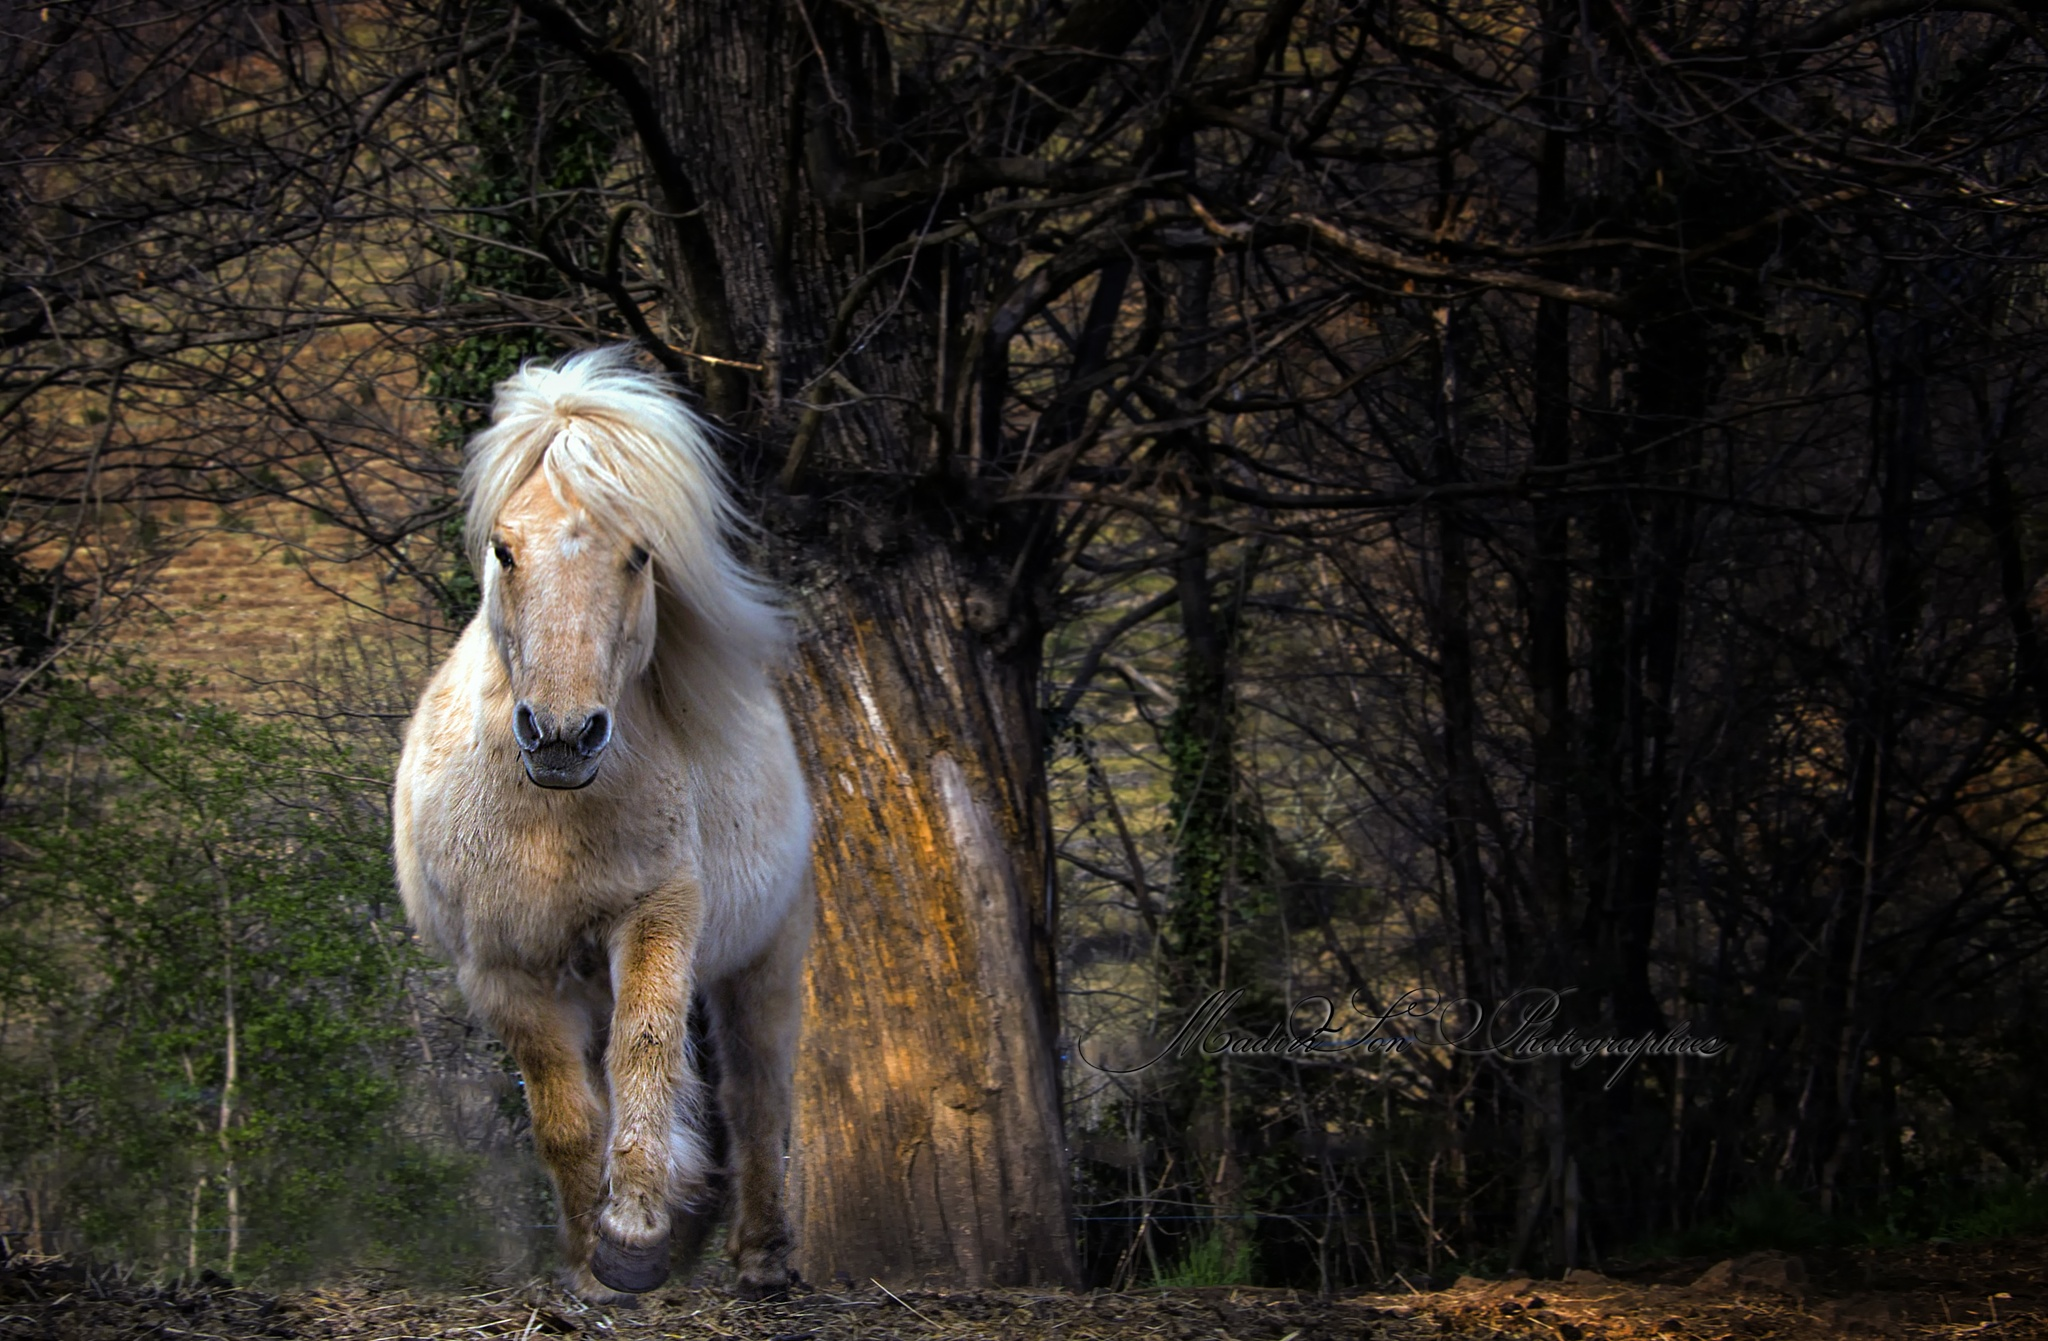 Galloping in the woods by OoEnJoYoO